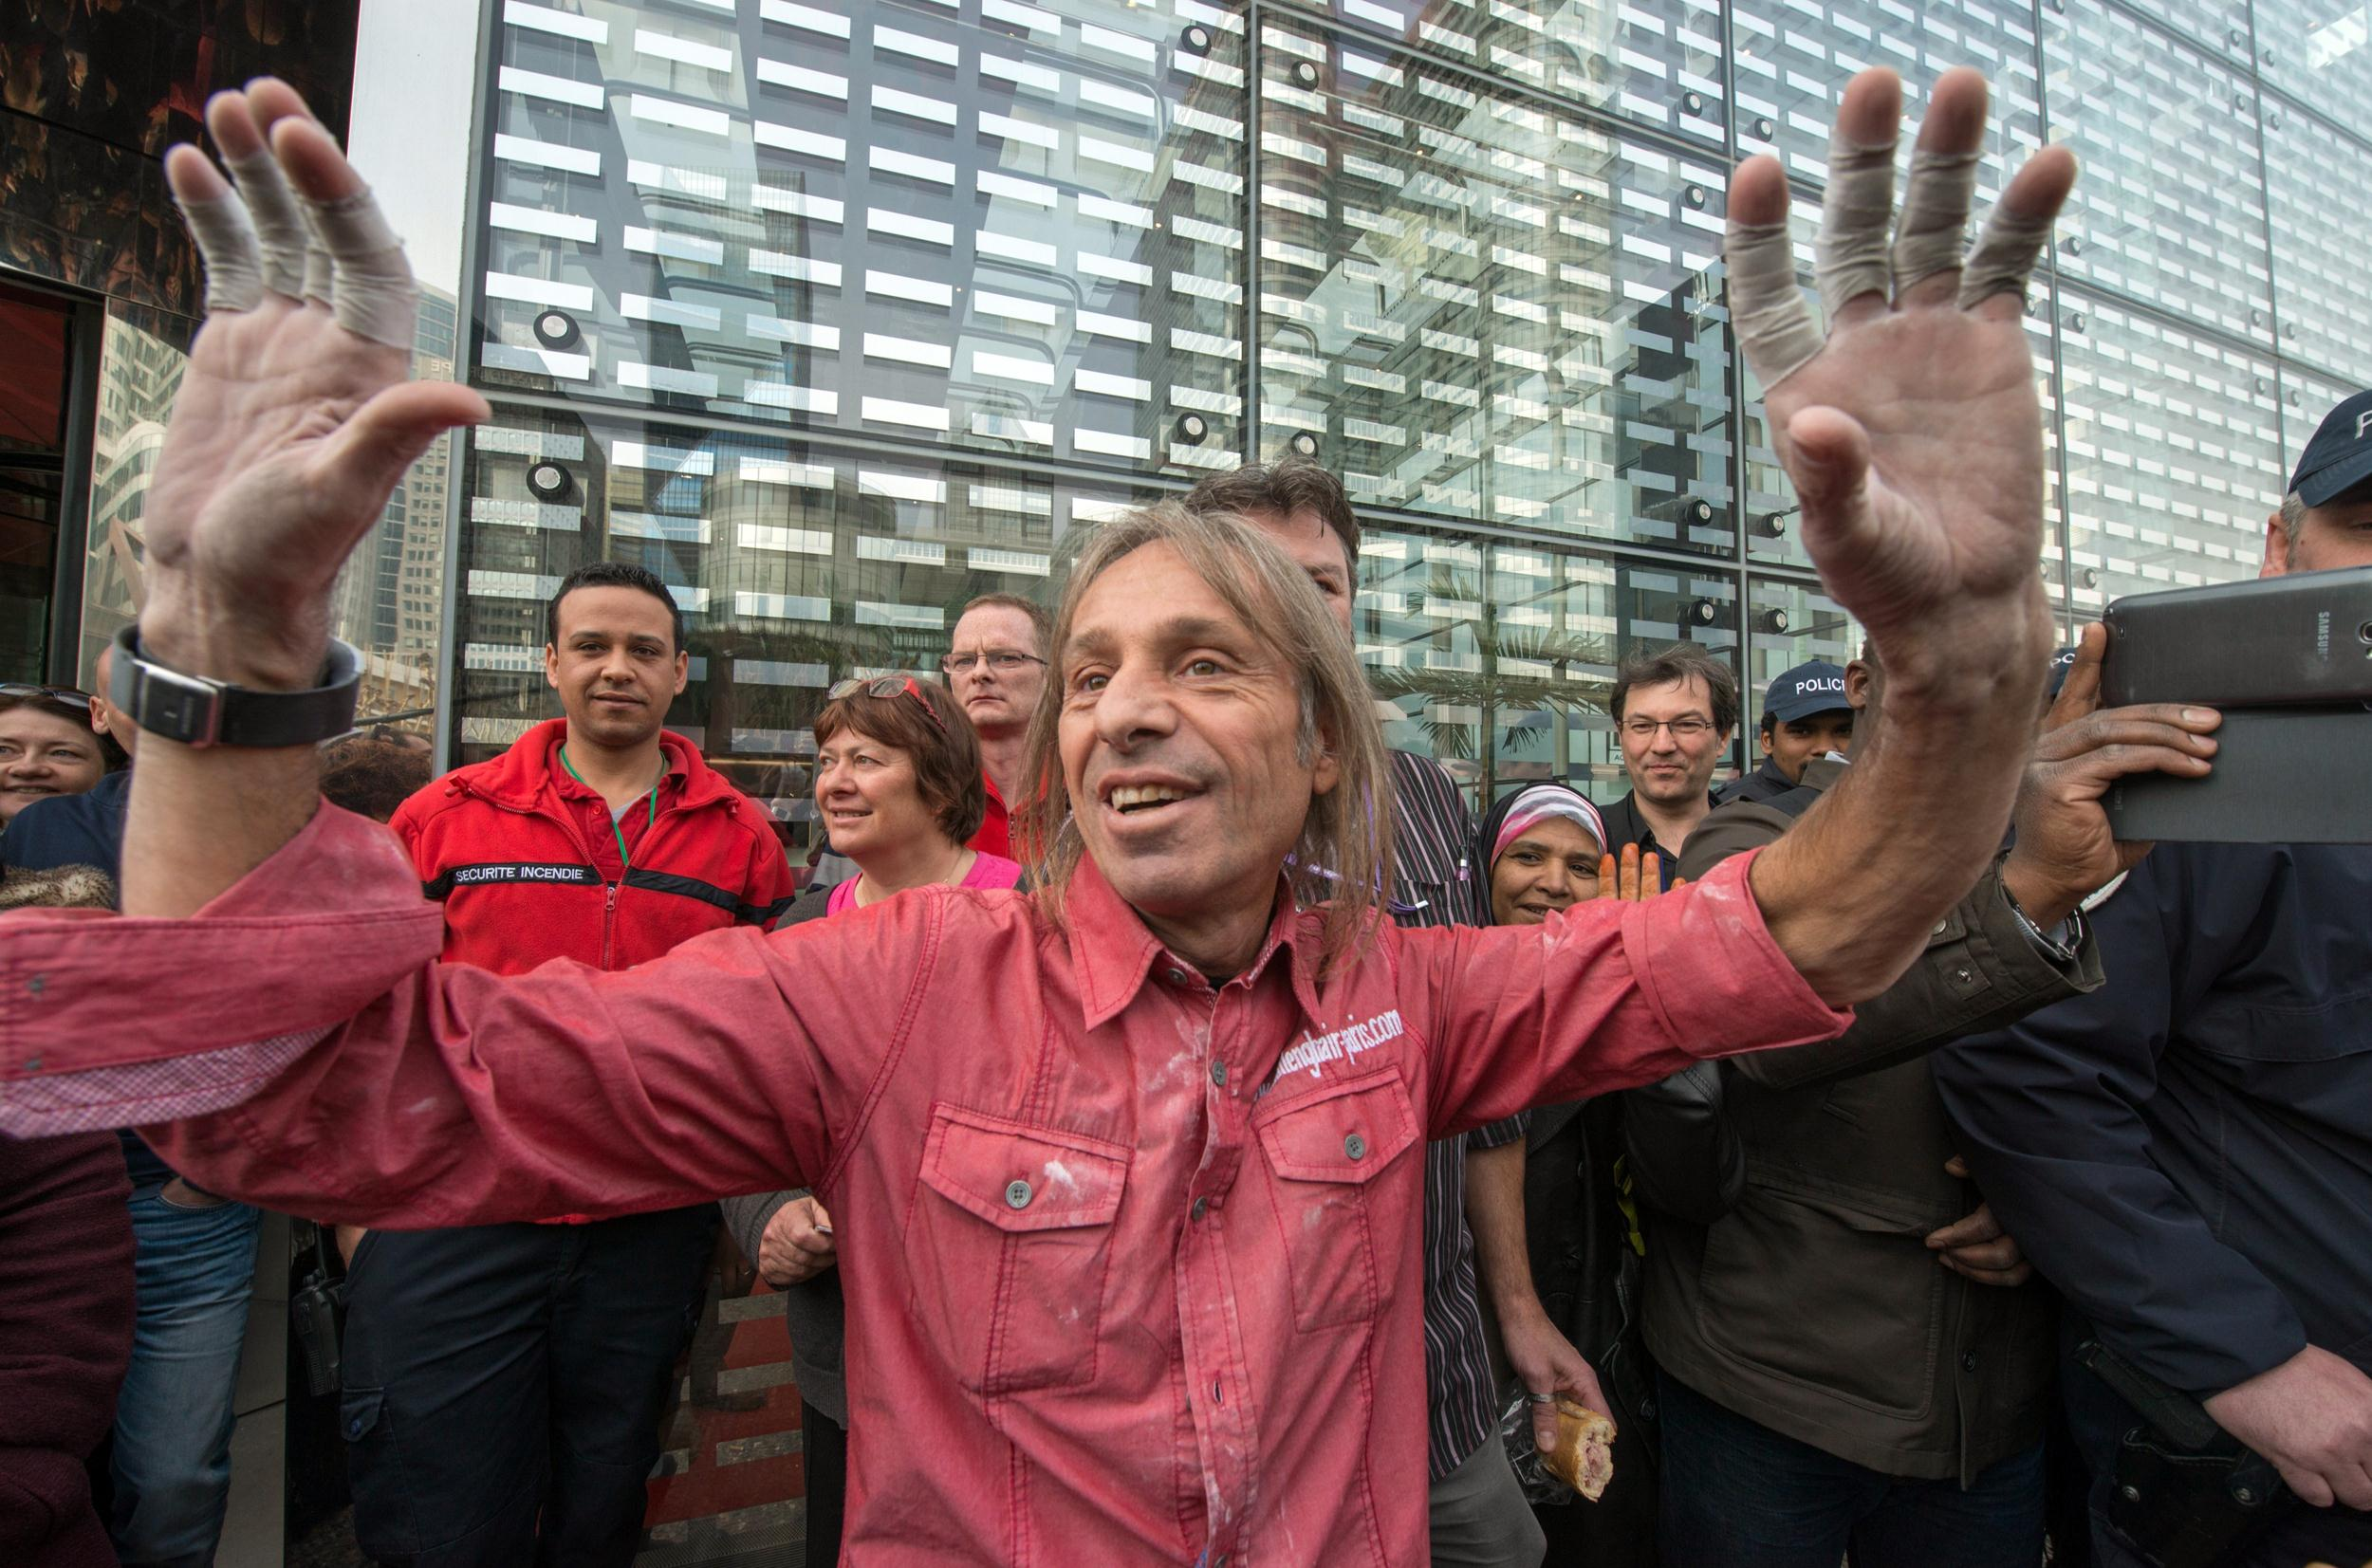 Image: Alain Robert acknowledges the media and onlookers after climbing the Ariane Tower.